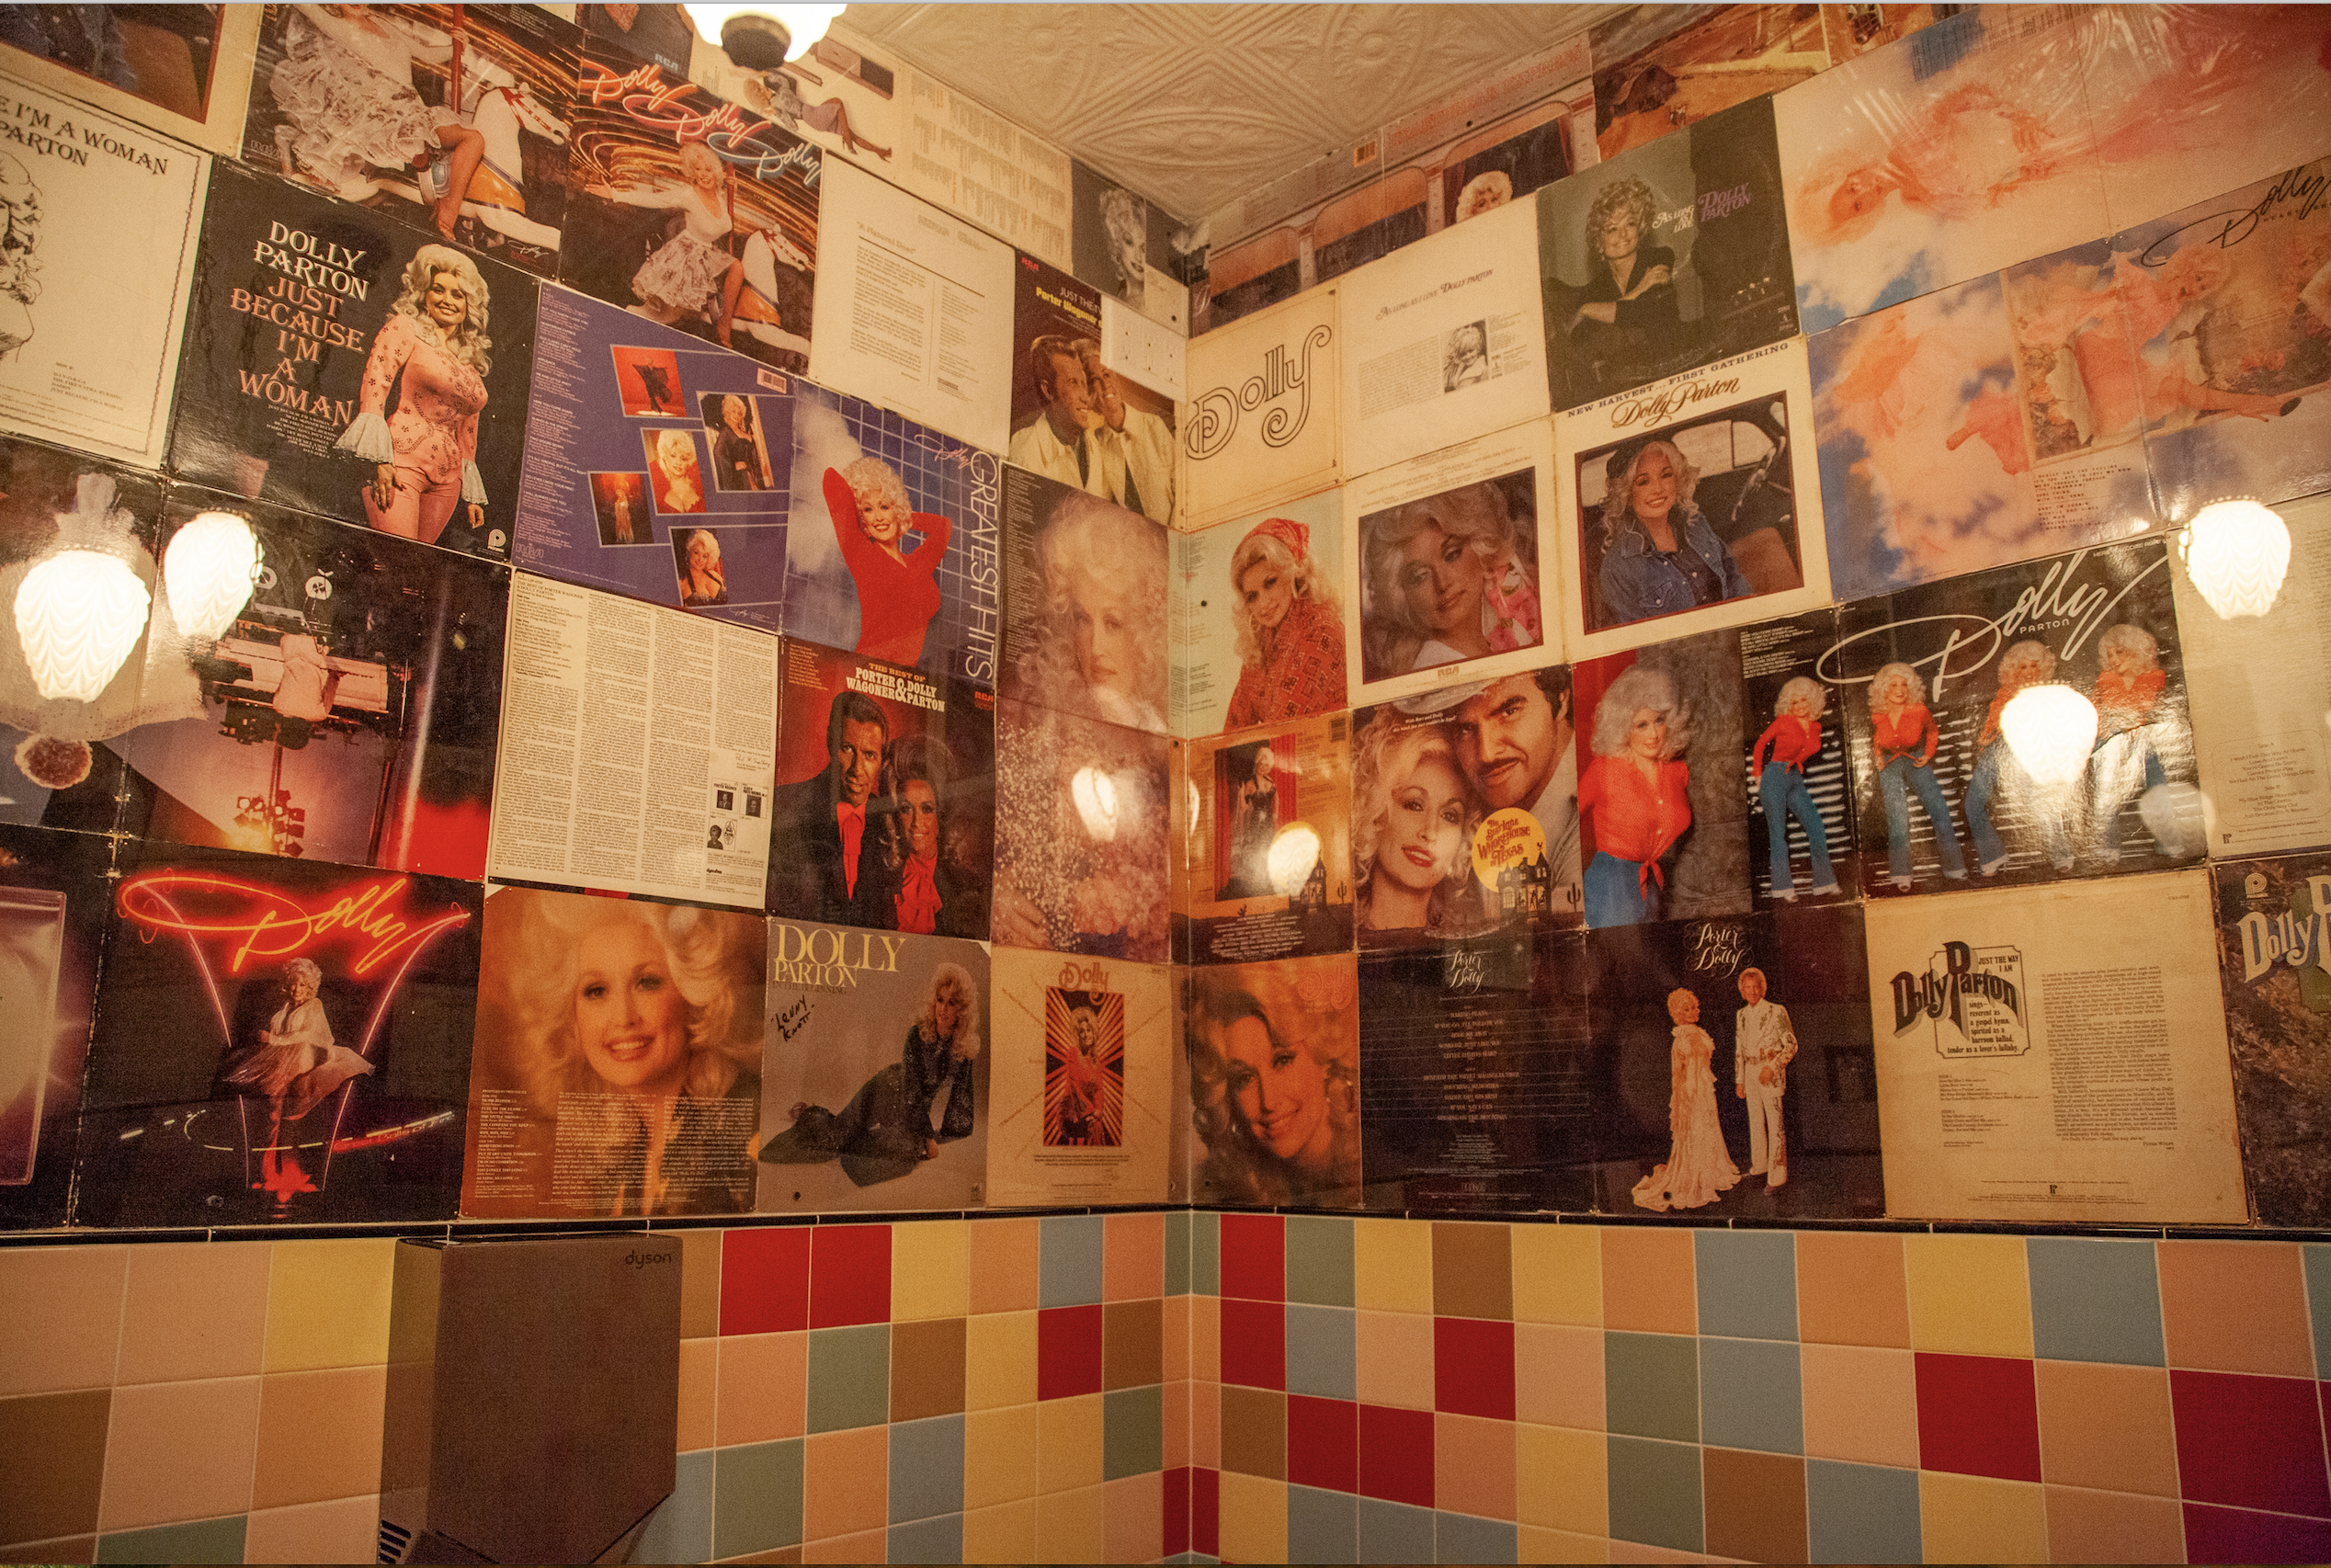 18 Best Restaurant and Bar Bathrooms in NYC You Need to See